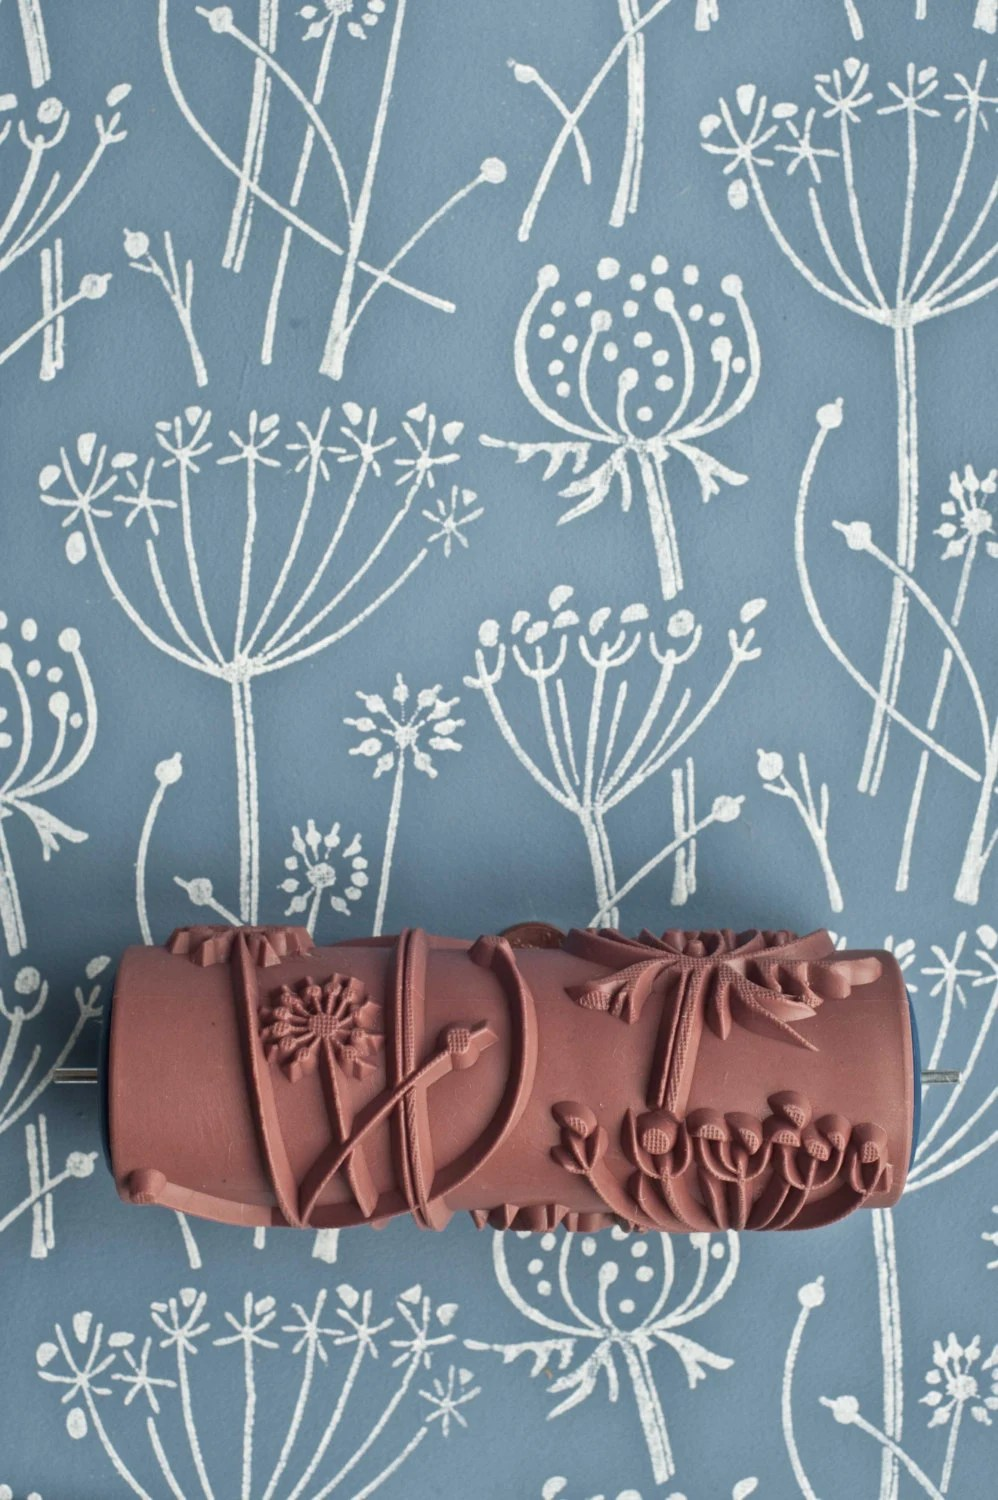 The Painted House by patternedpaintroller on Etsy Tussock patterned paint roller